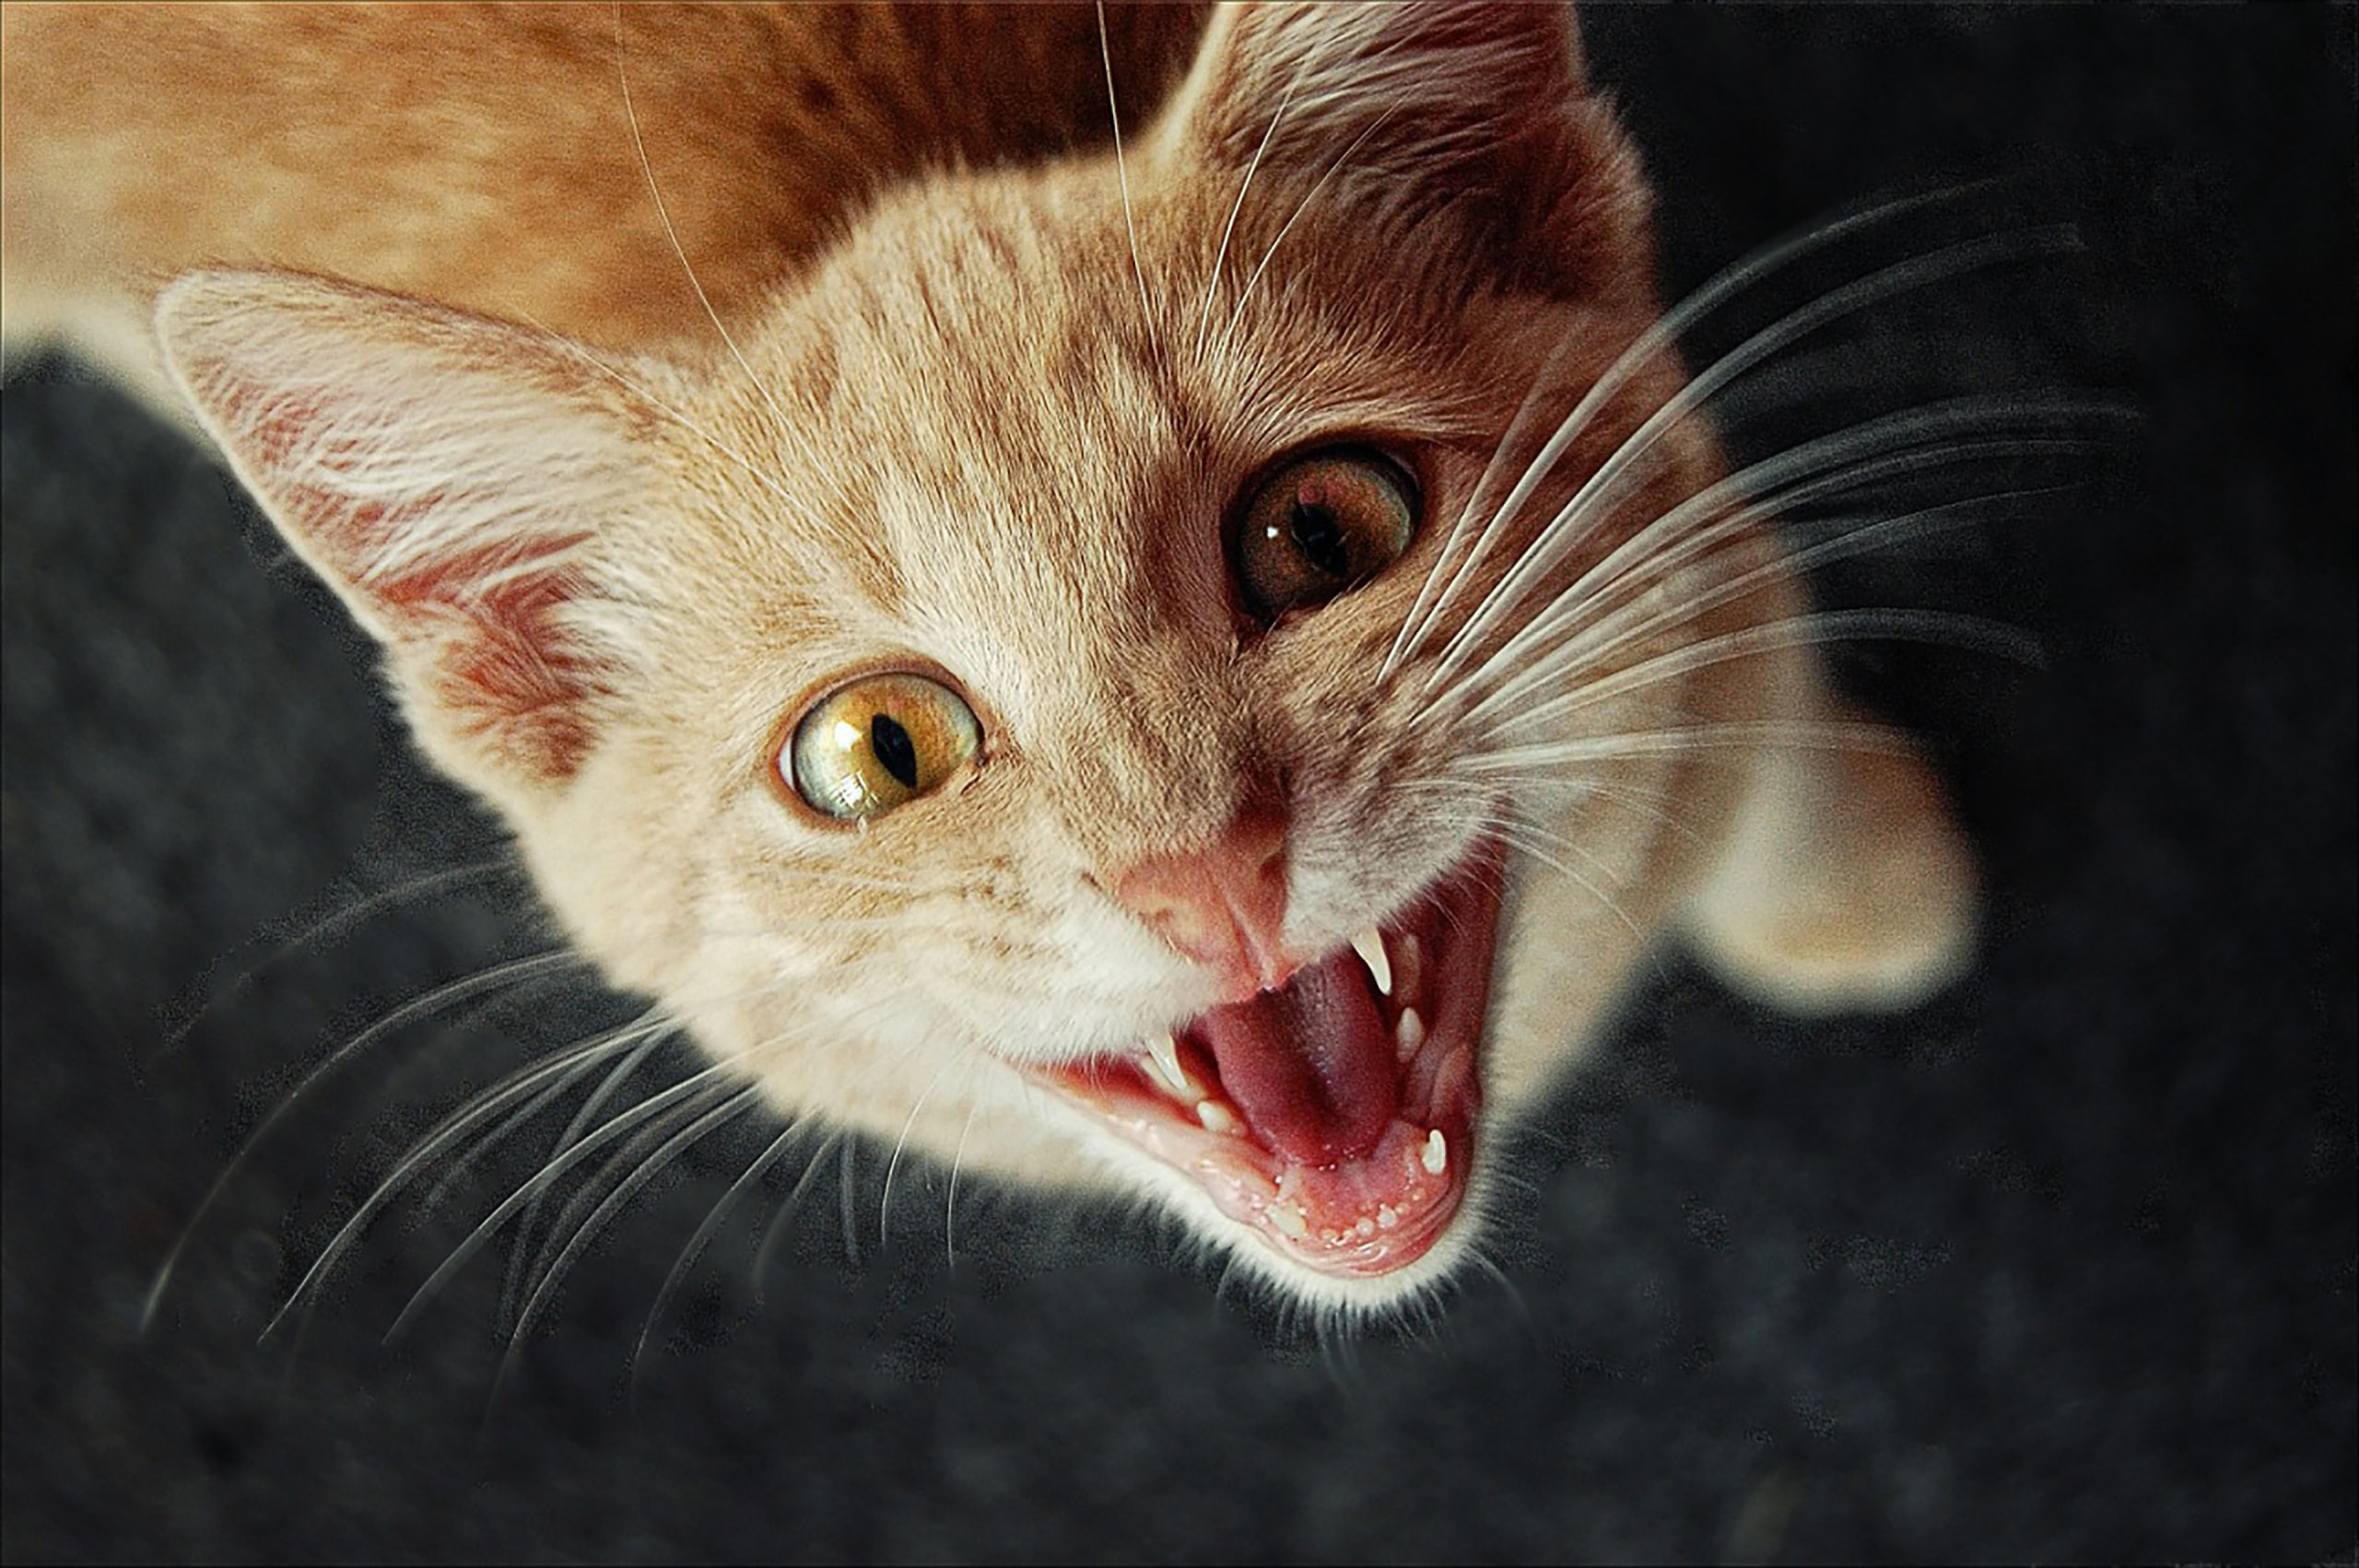 focus photography of orange tabby cat